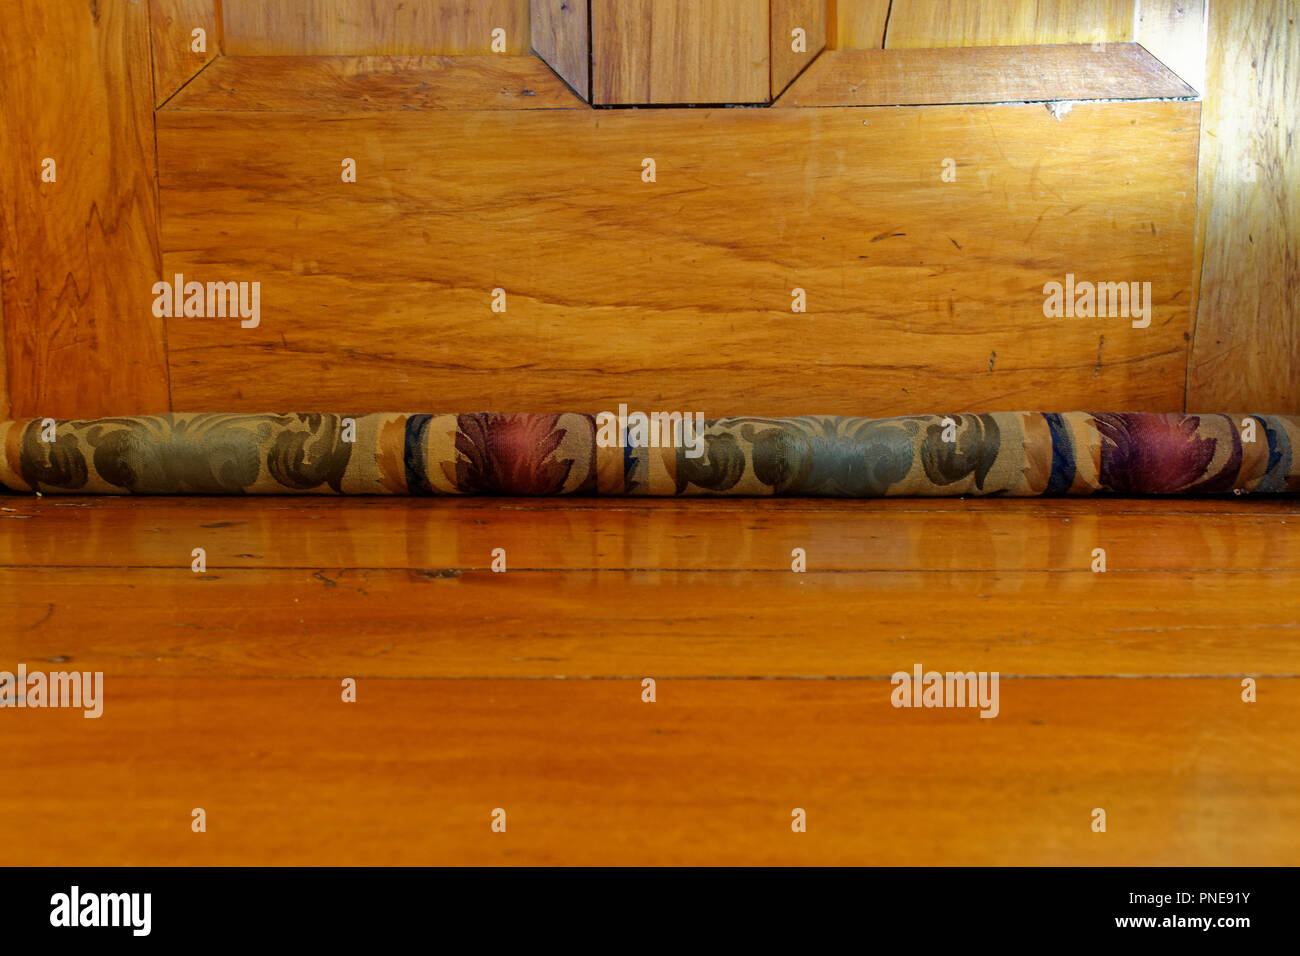 A floral, material draught excluder stops draughts breezing under the door, a simple solution to staying warm in winter. - Stock Image